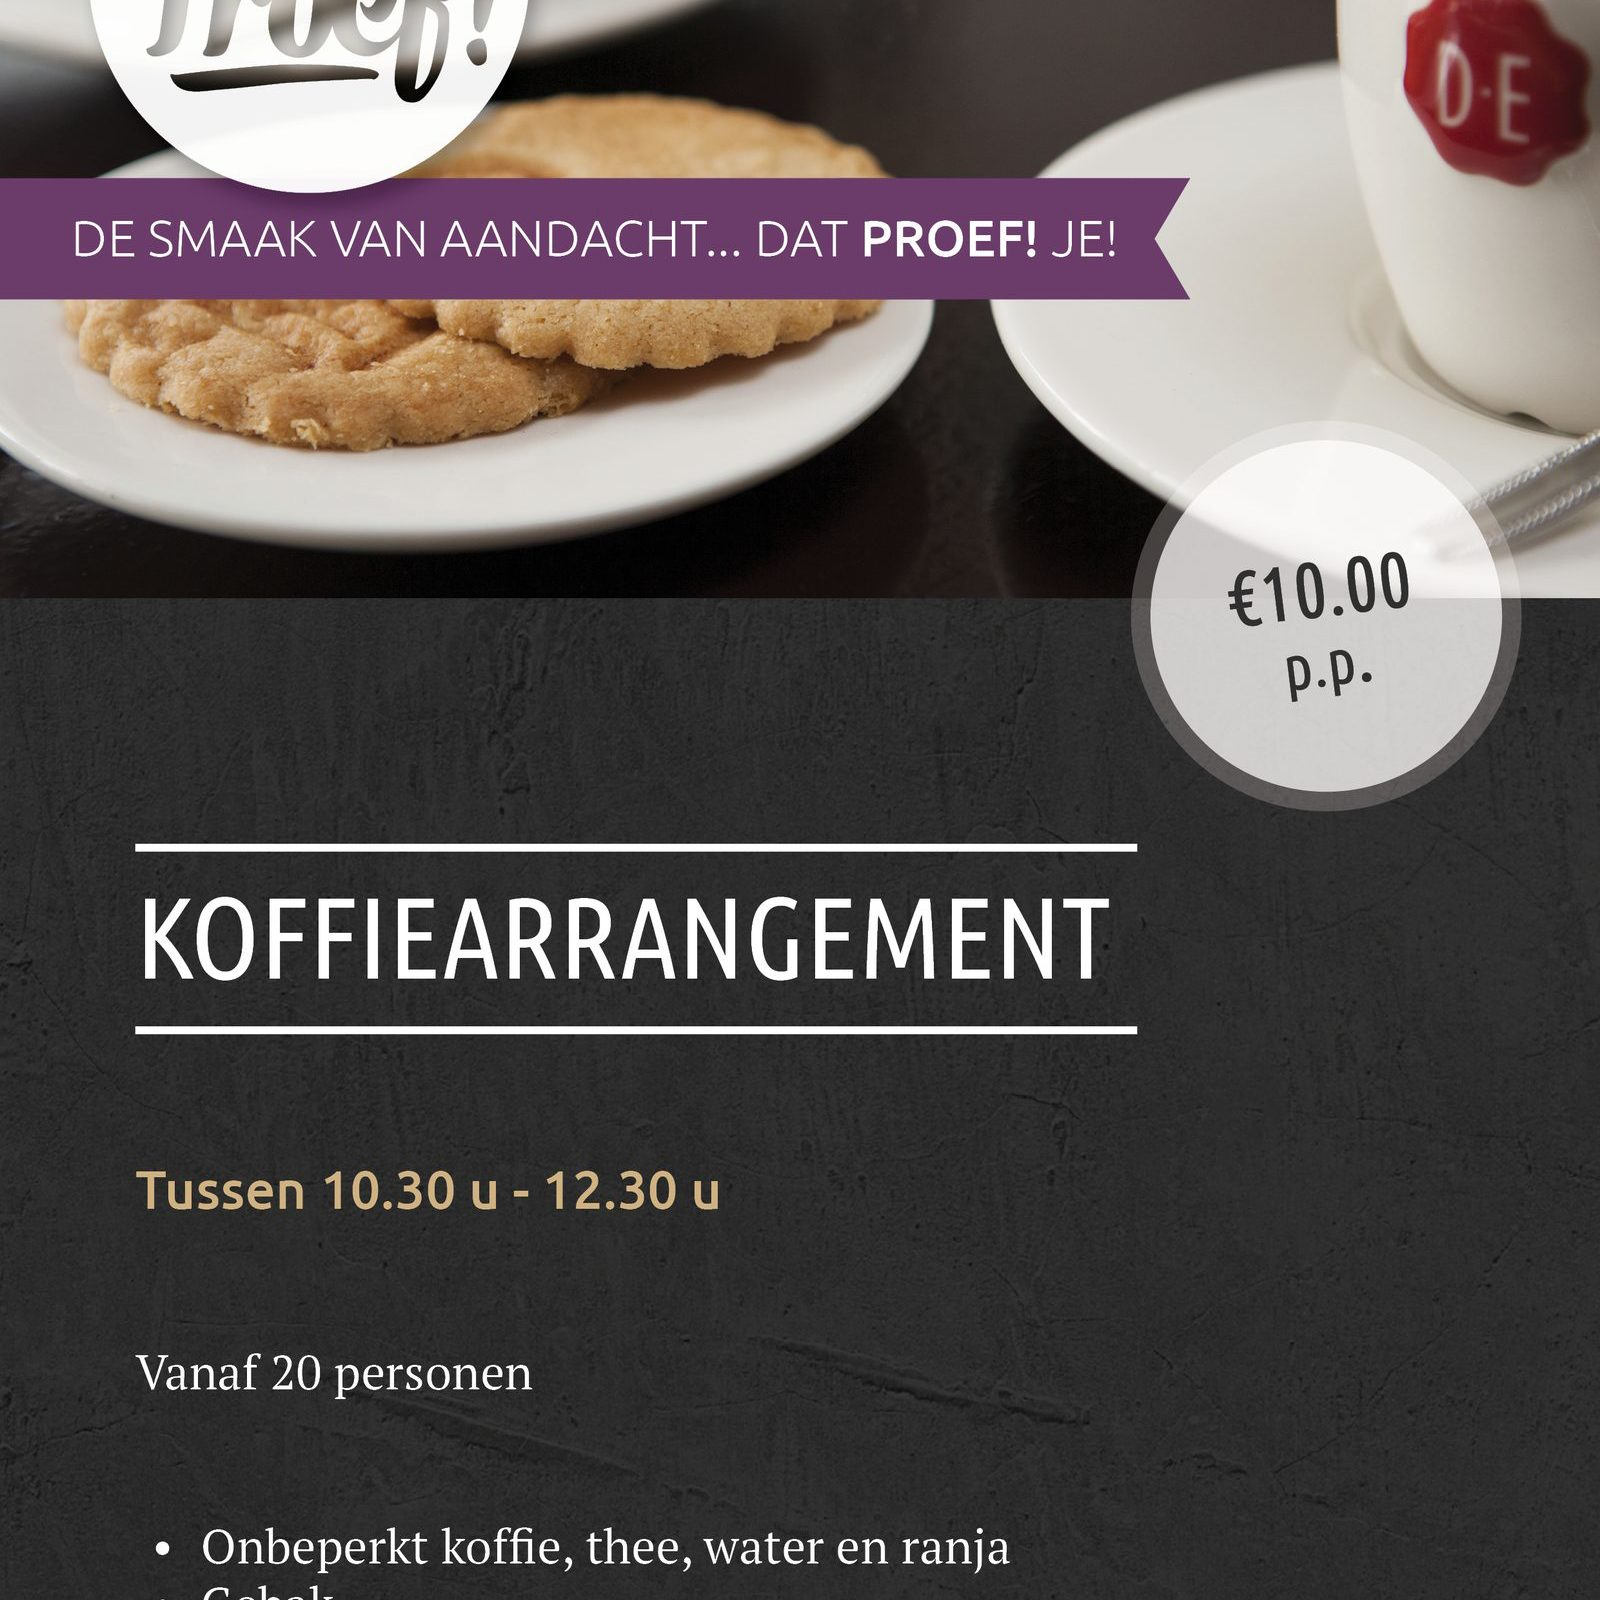 Celebrate birthday in Voorthuizen at Proef! De Boshoek with coffee arrangement